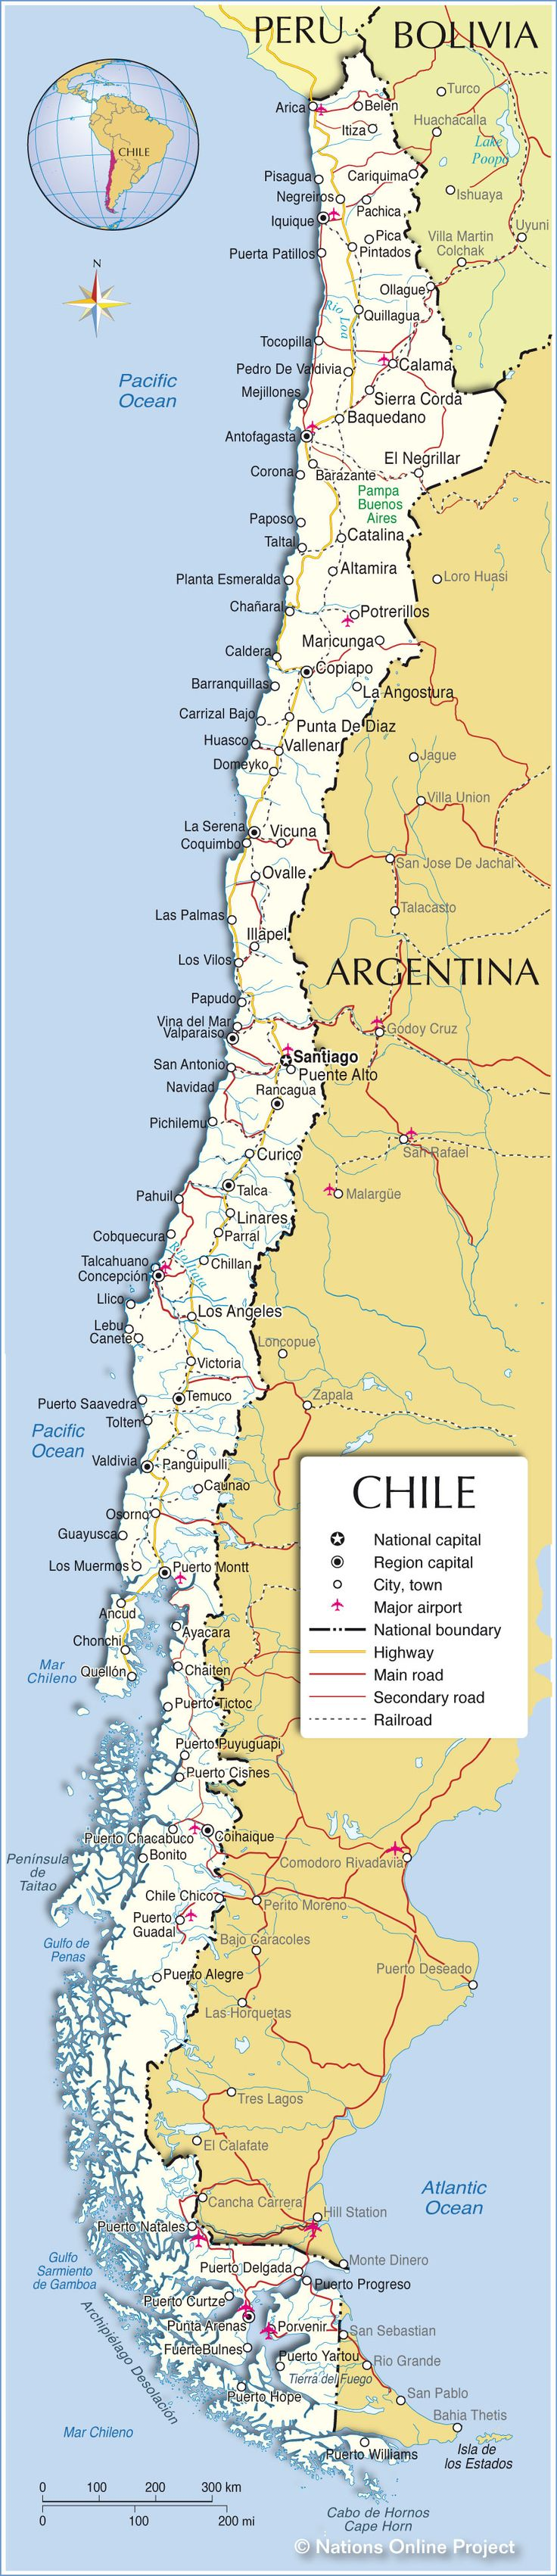 Best Images About Chile Maps On Pinterest Santiago South - Ecuador south america map